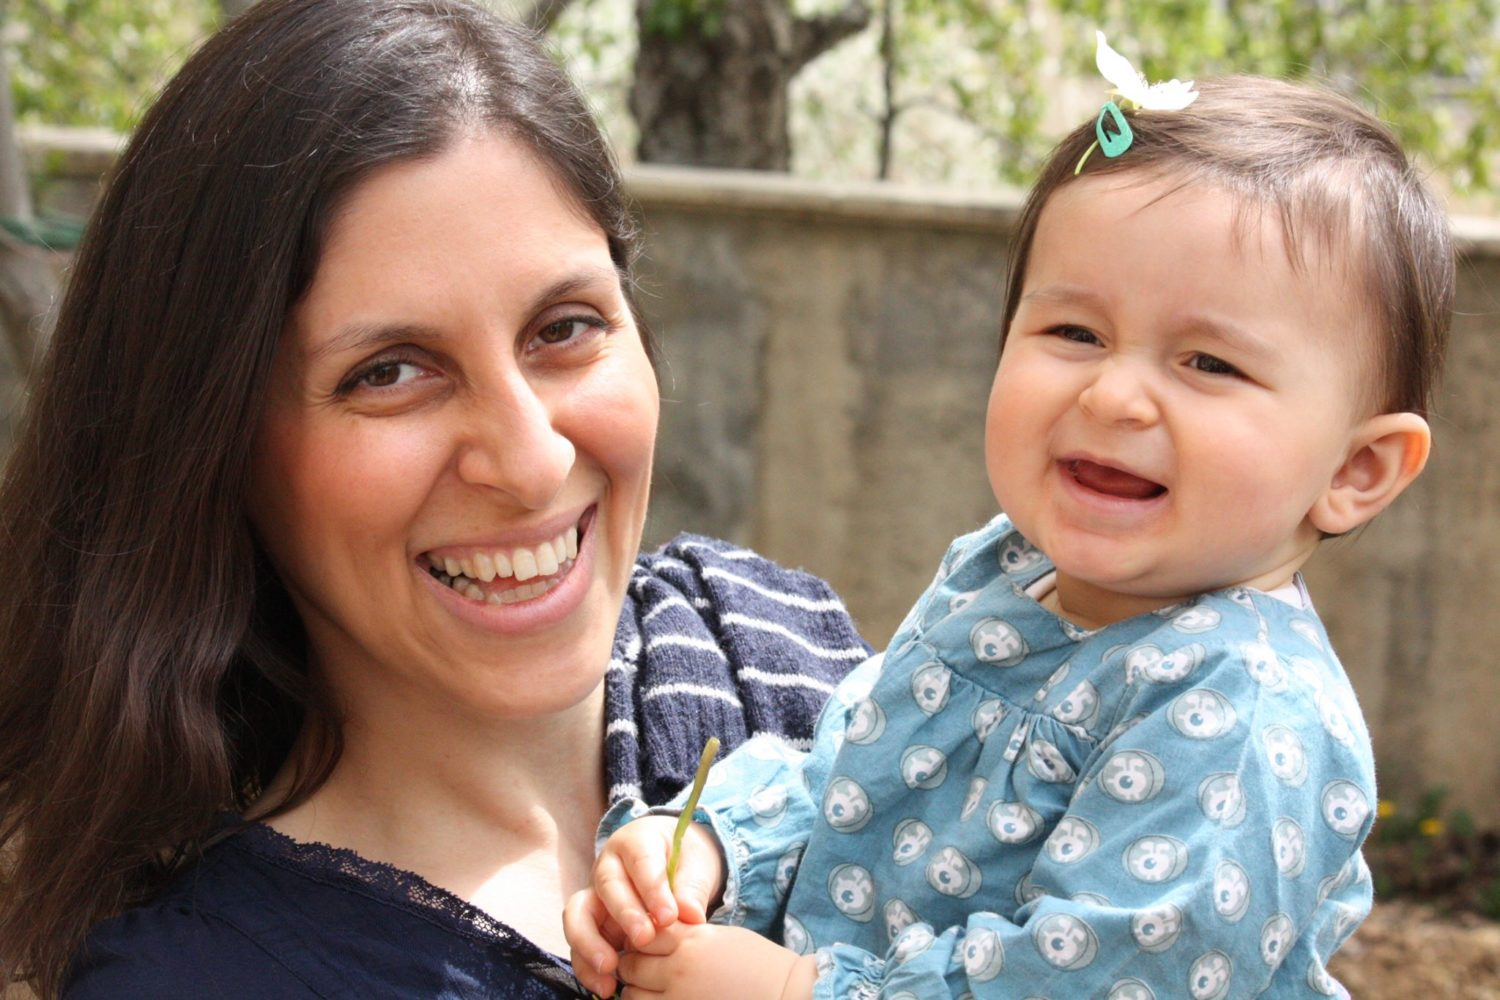 Nazanin and her daughter Gabriella laughing.